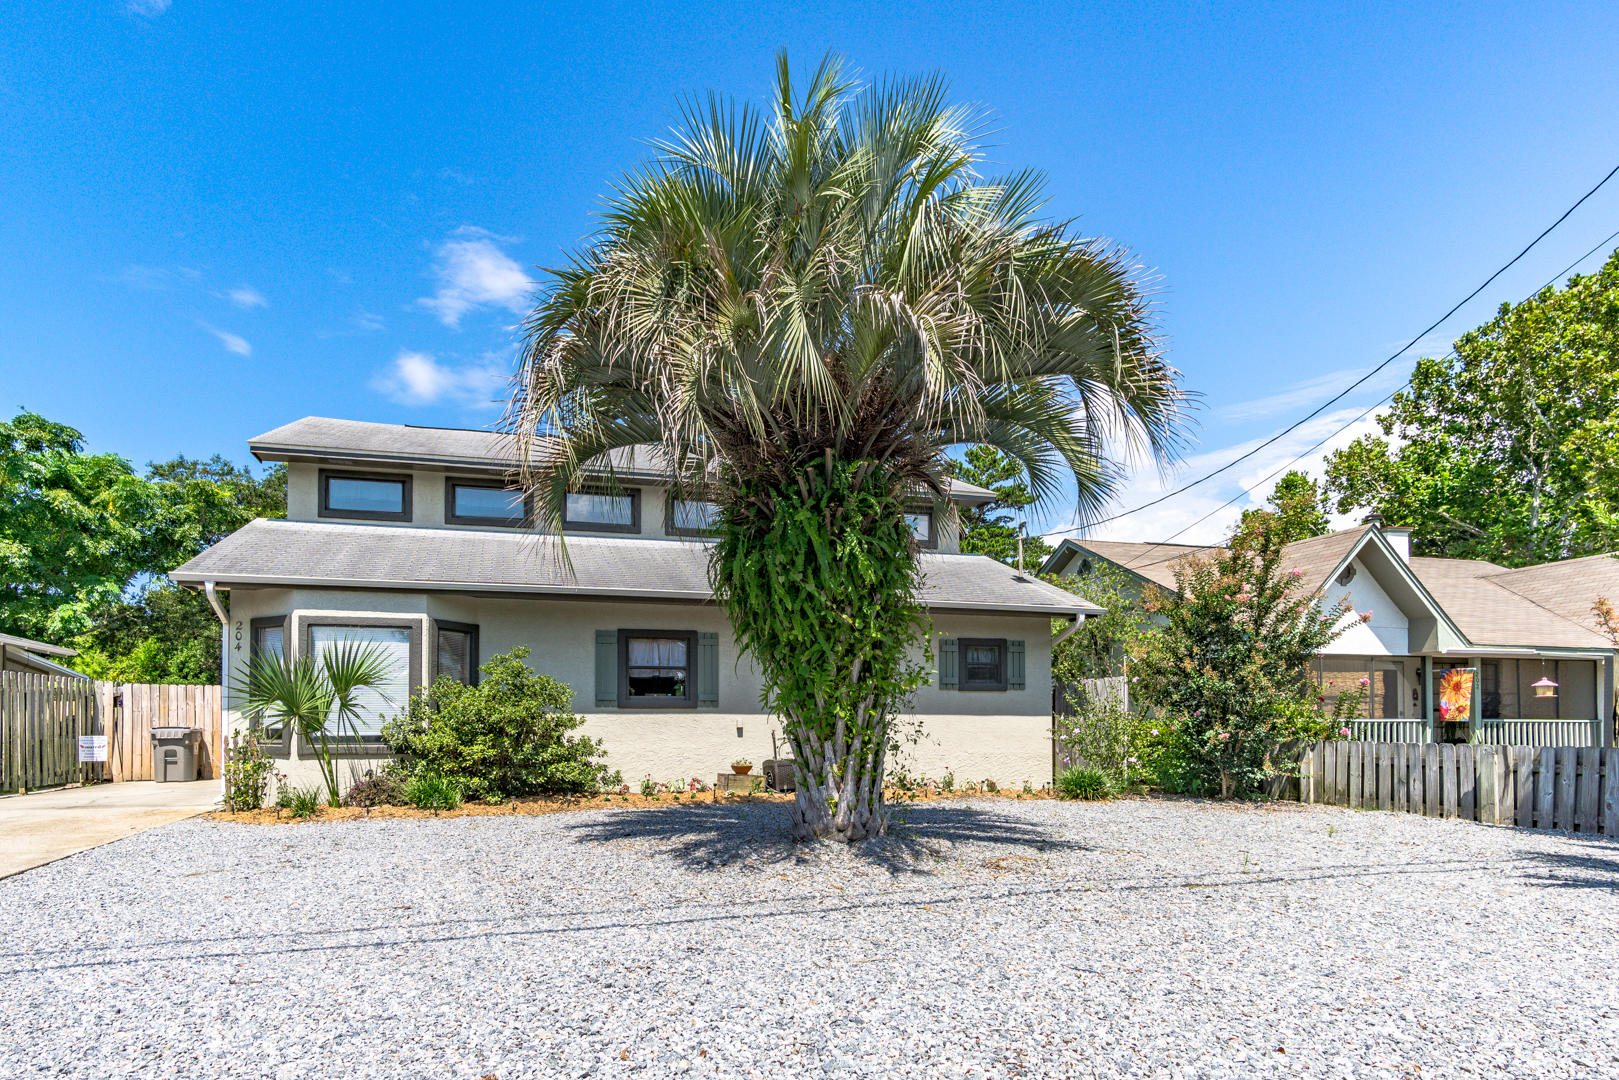 West end Panama City Beach is the ideal location and here is your chance to buy a 3 bedroom 3 bath home just 1816 feet to the beach at walkover #76A! This is a healthy walk or very short golf cart ride to the beach! This home has been very well maintained and has geo-thermal heating which makes it very economical to heat the home in winter. A new metal roof was just installed February 2019! The private level backyard has plenty of room for a pool. The deck was added in May 2015, new flooring added in 2016. Priced to sell - please call your Realtor for an appointment today! Realtor believes all information is accurate but is not guaranteed. If important to buyer please verify.